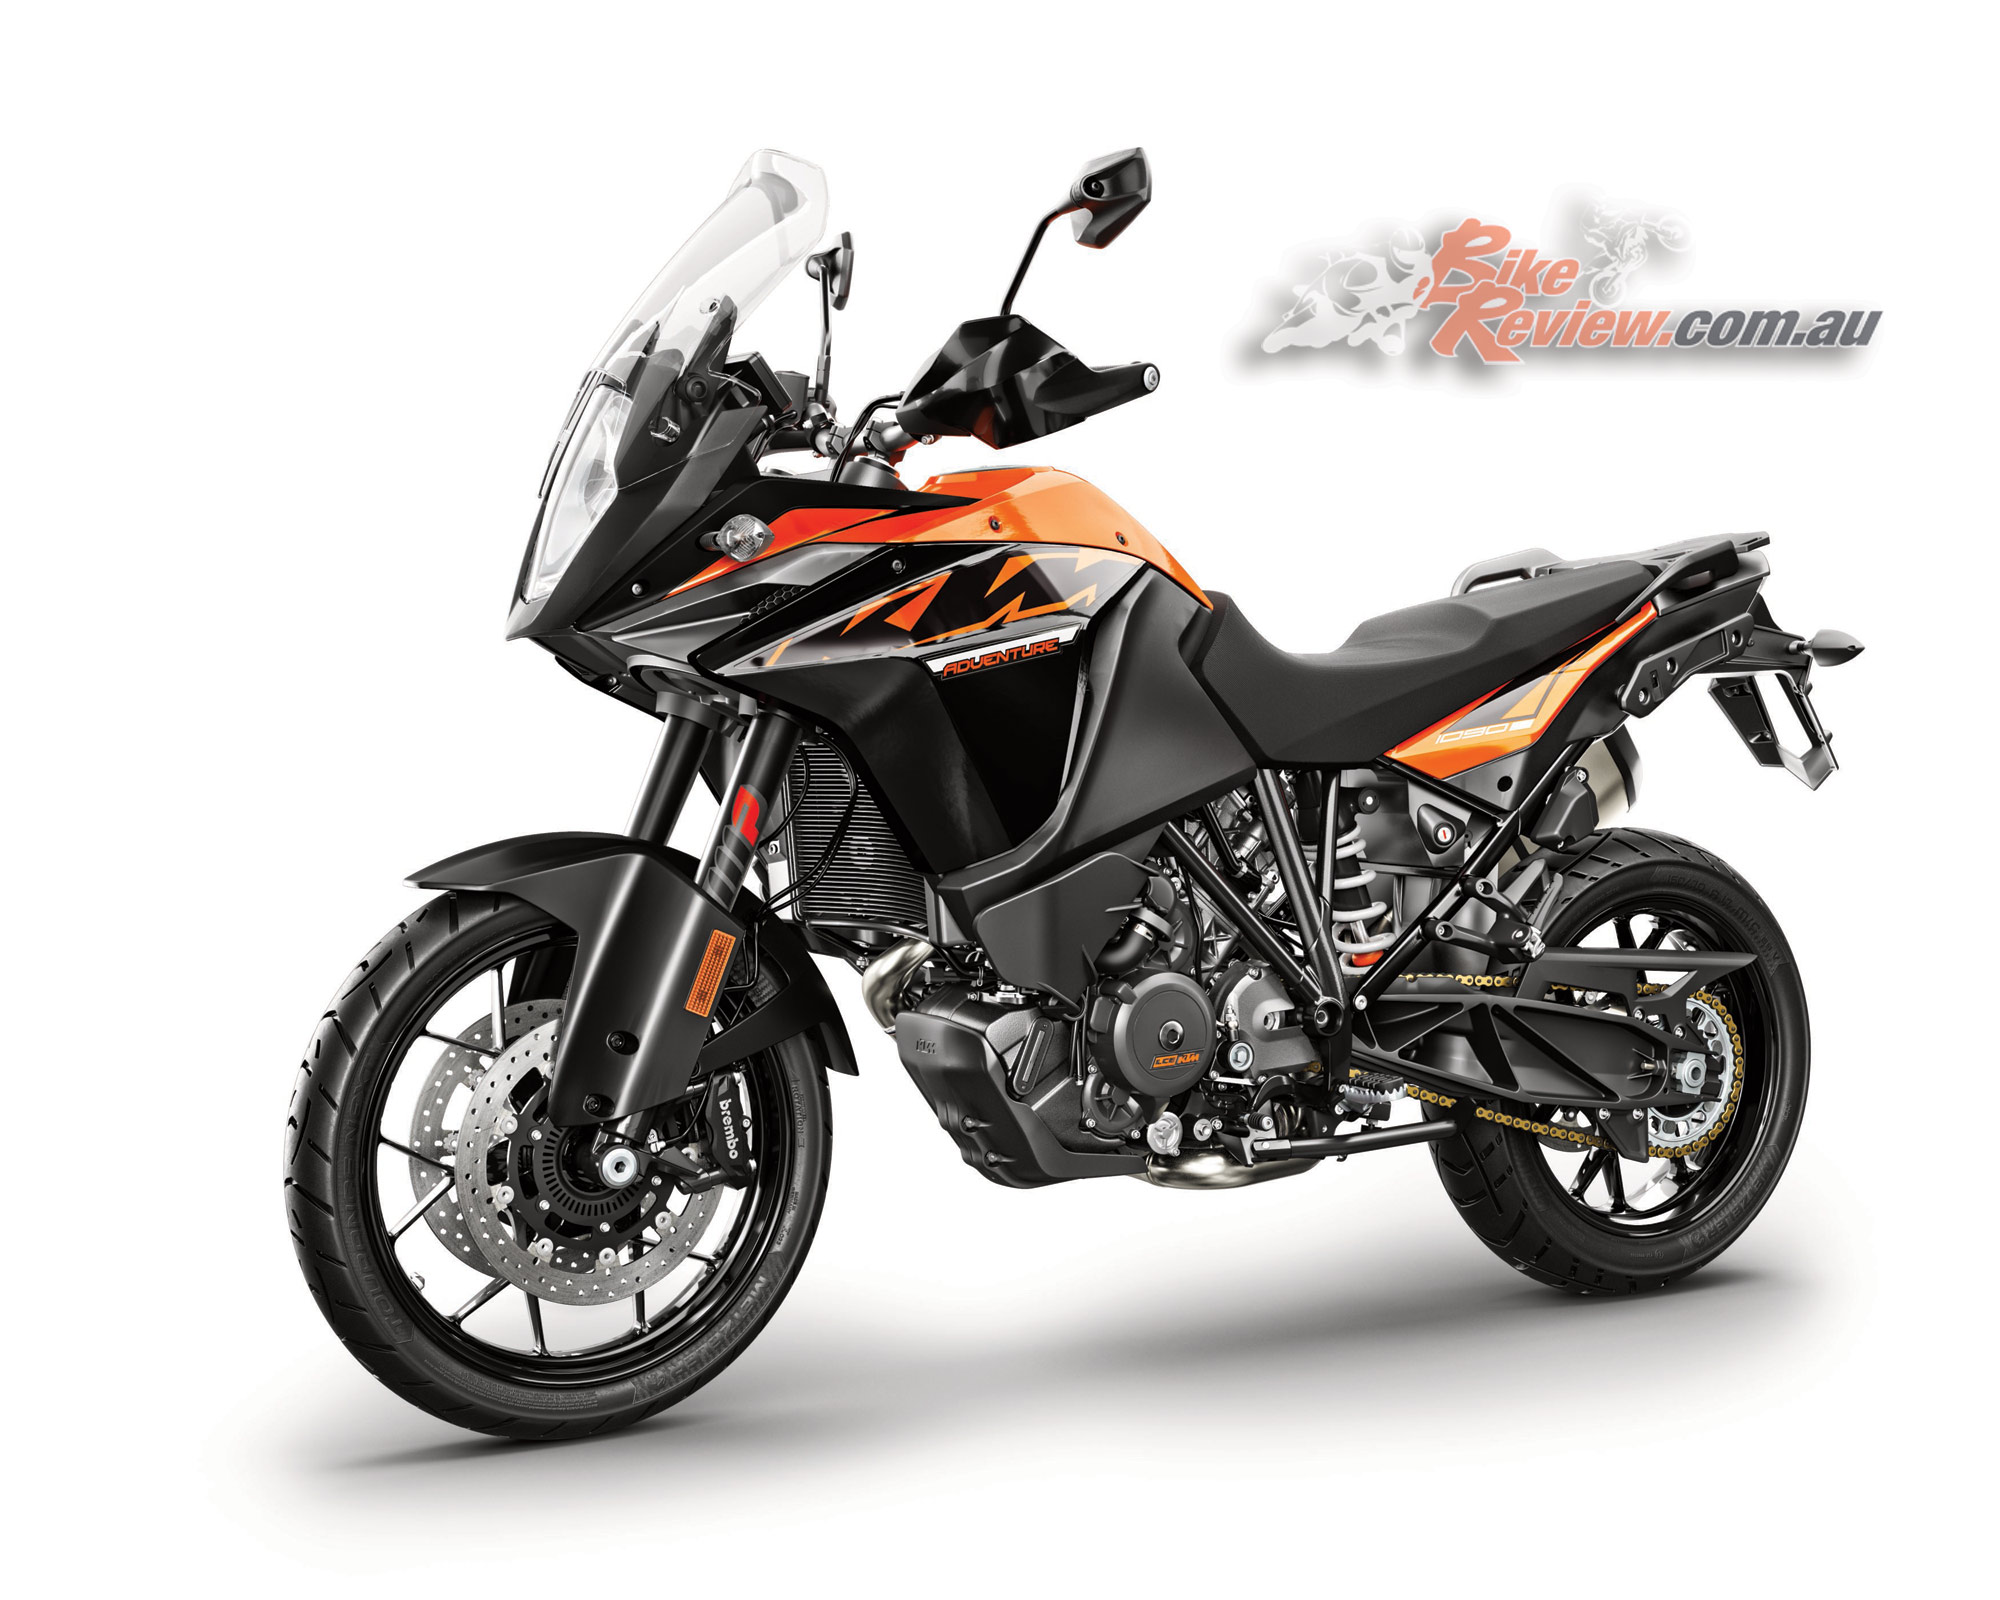 2017 ktm 1090 adventure revealed bike review. Black Bedroom Furniture Sets. Home Design Ideas